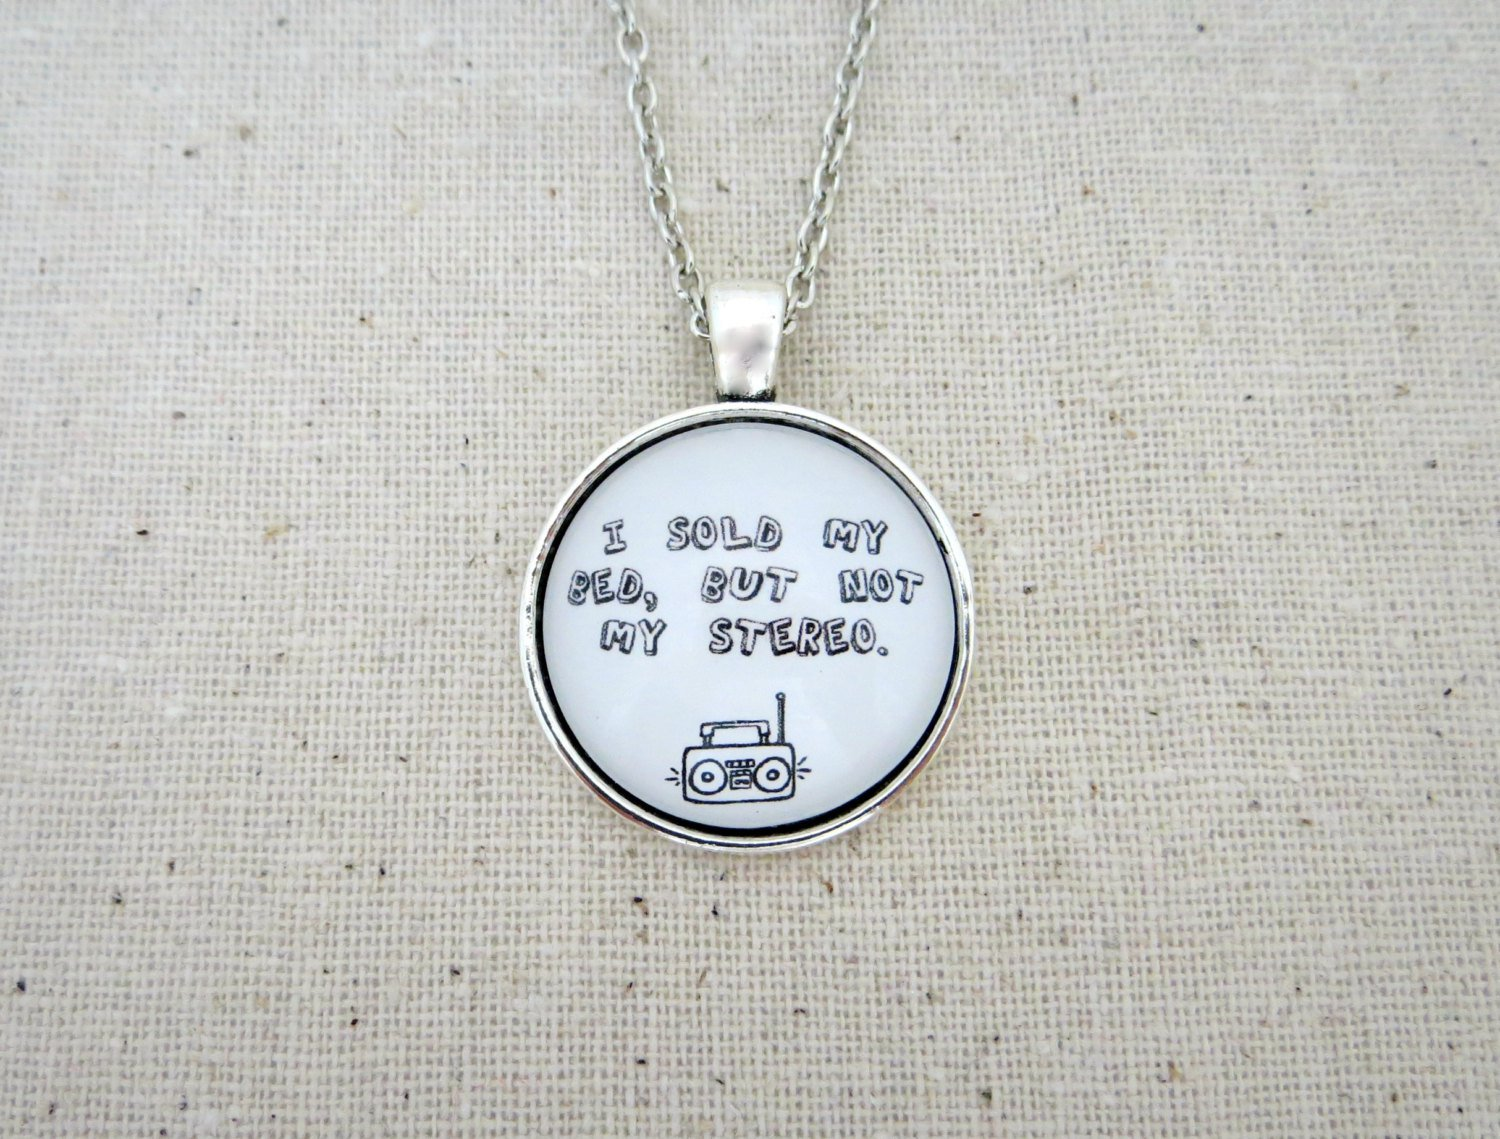 Capital Cities I Sold My Bed But Not My Stereo Inspired Lyrical Quote Necklace (Silver, 18 in)